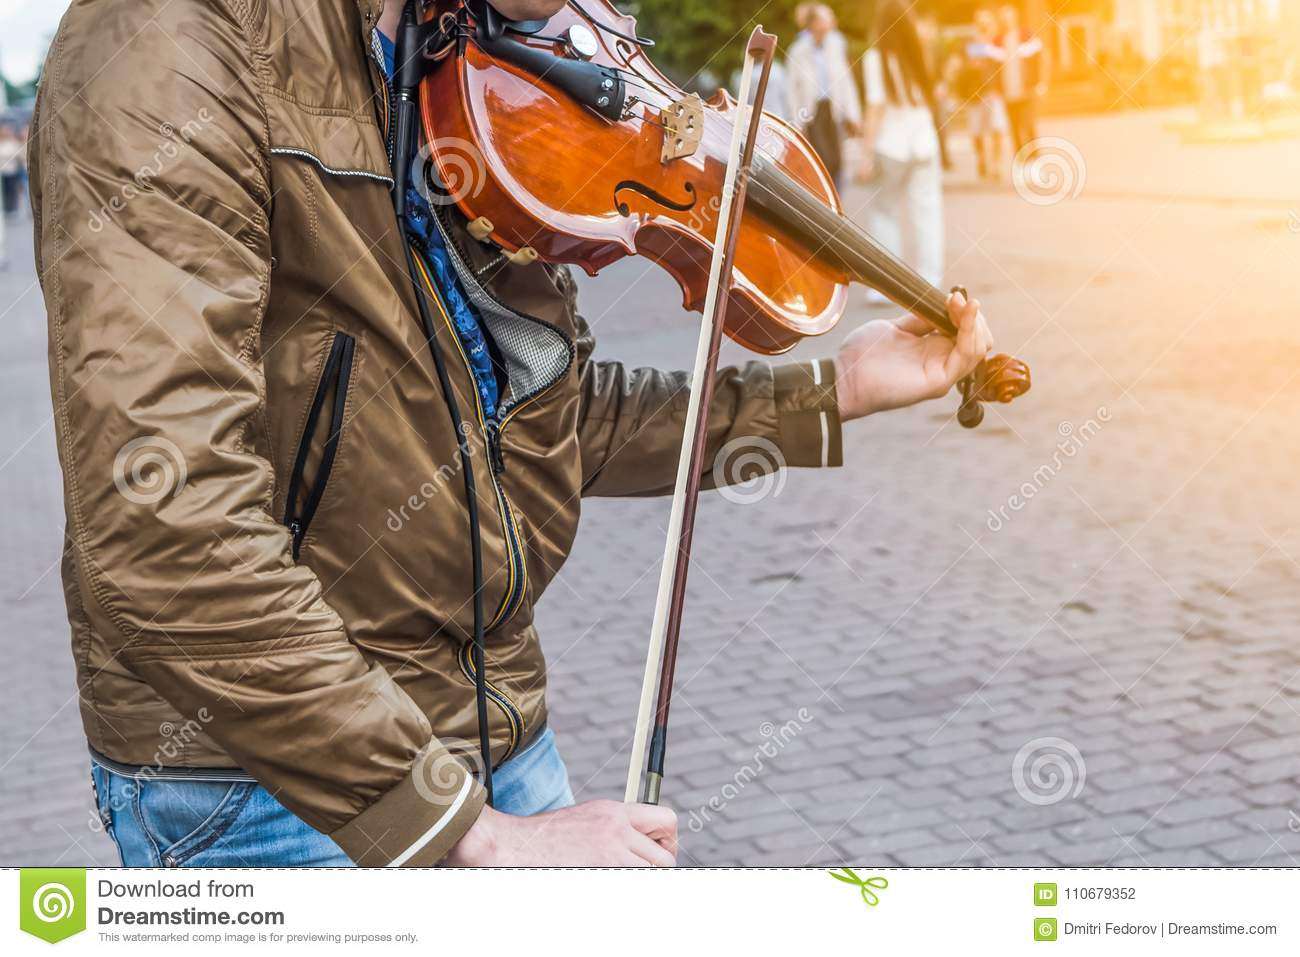 Street violinist plays the violin at noon